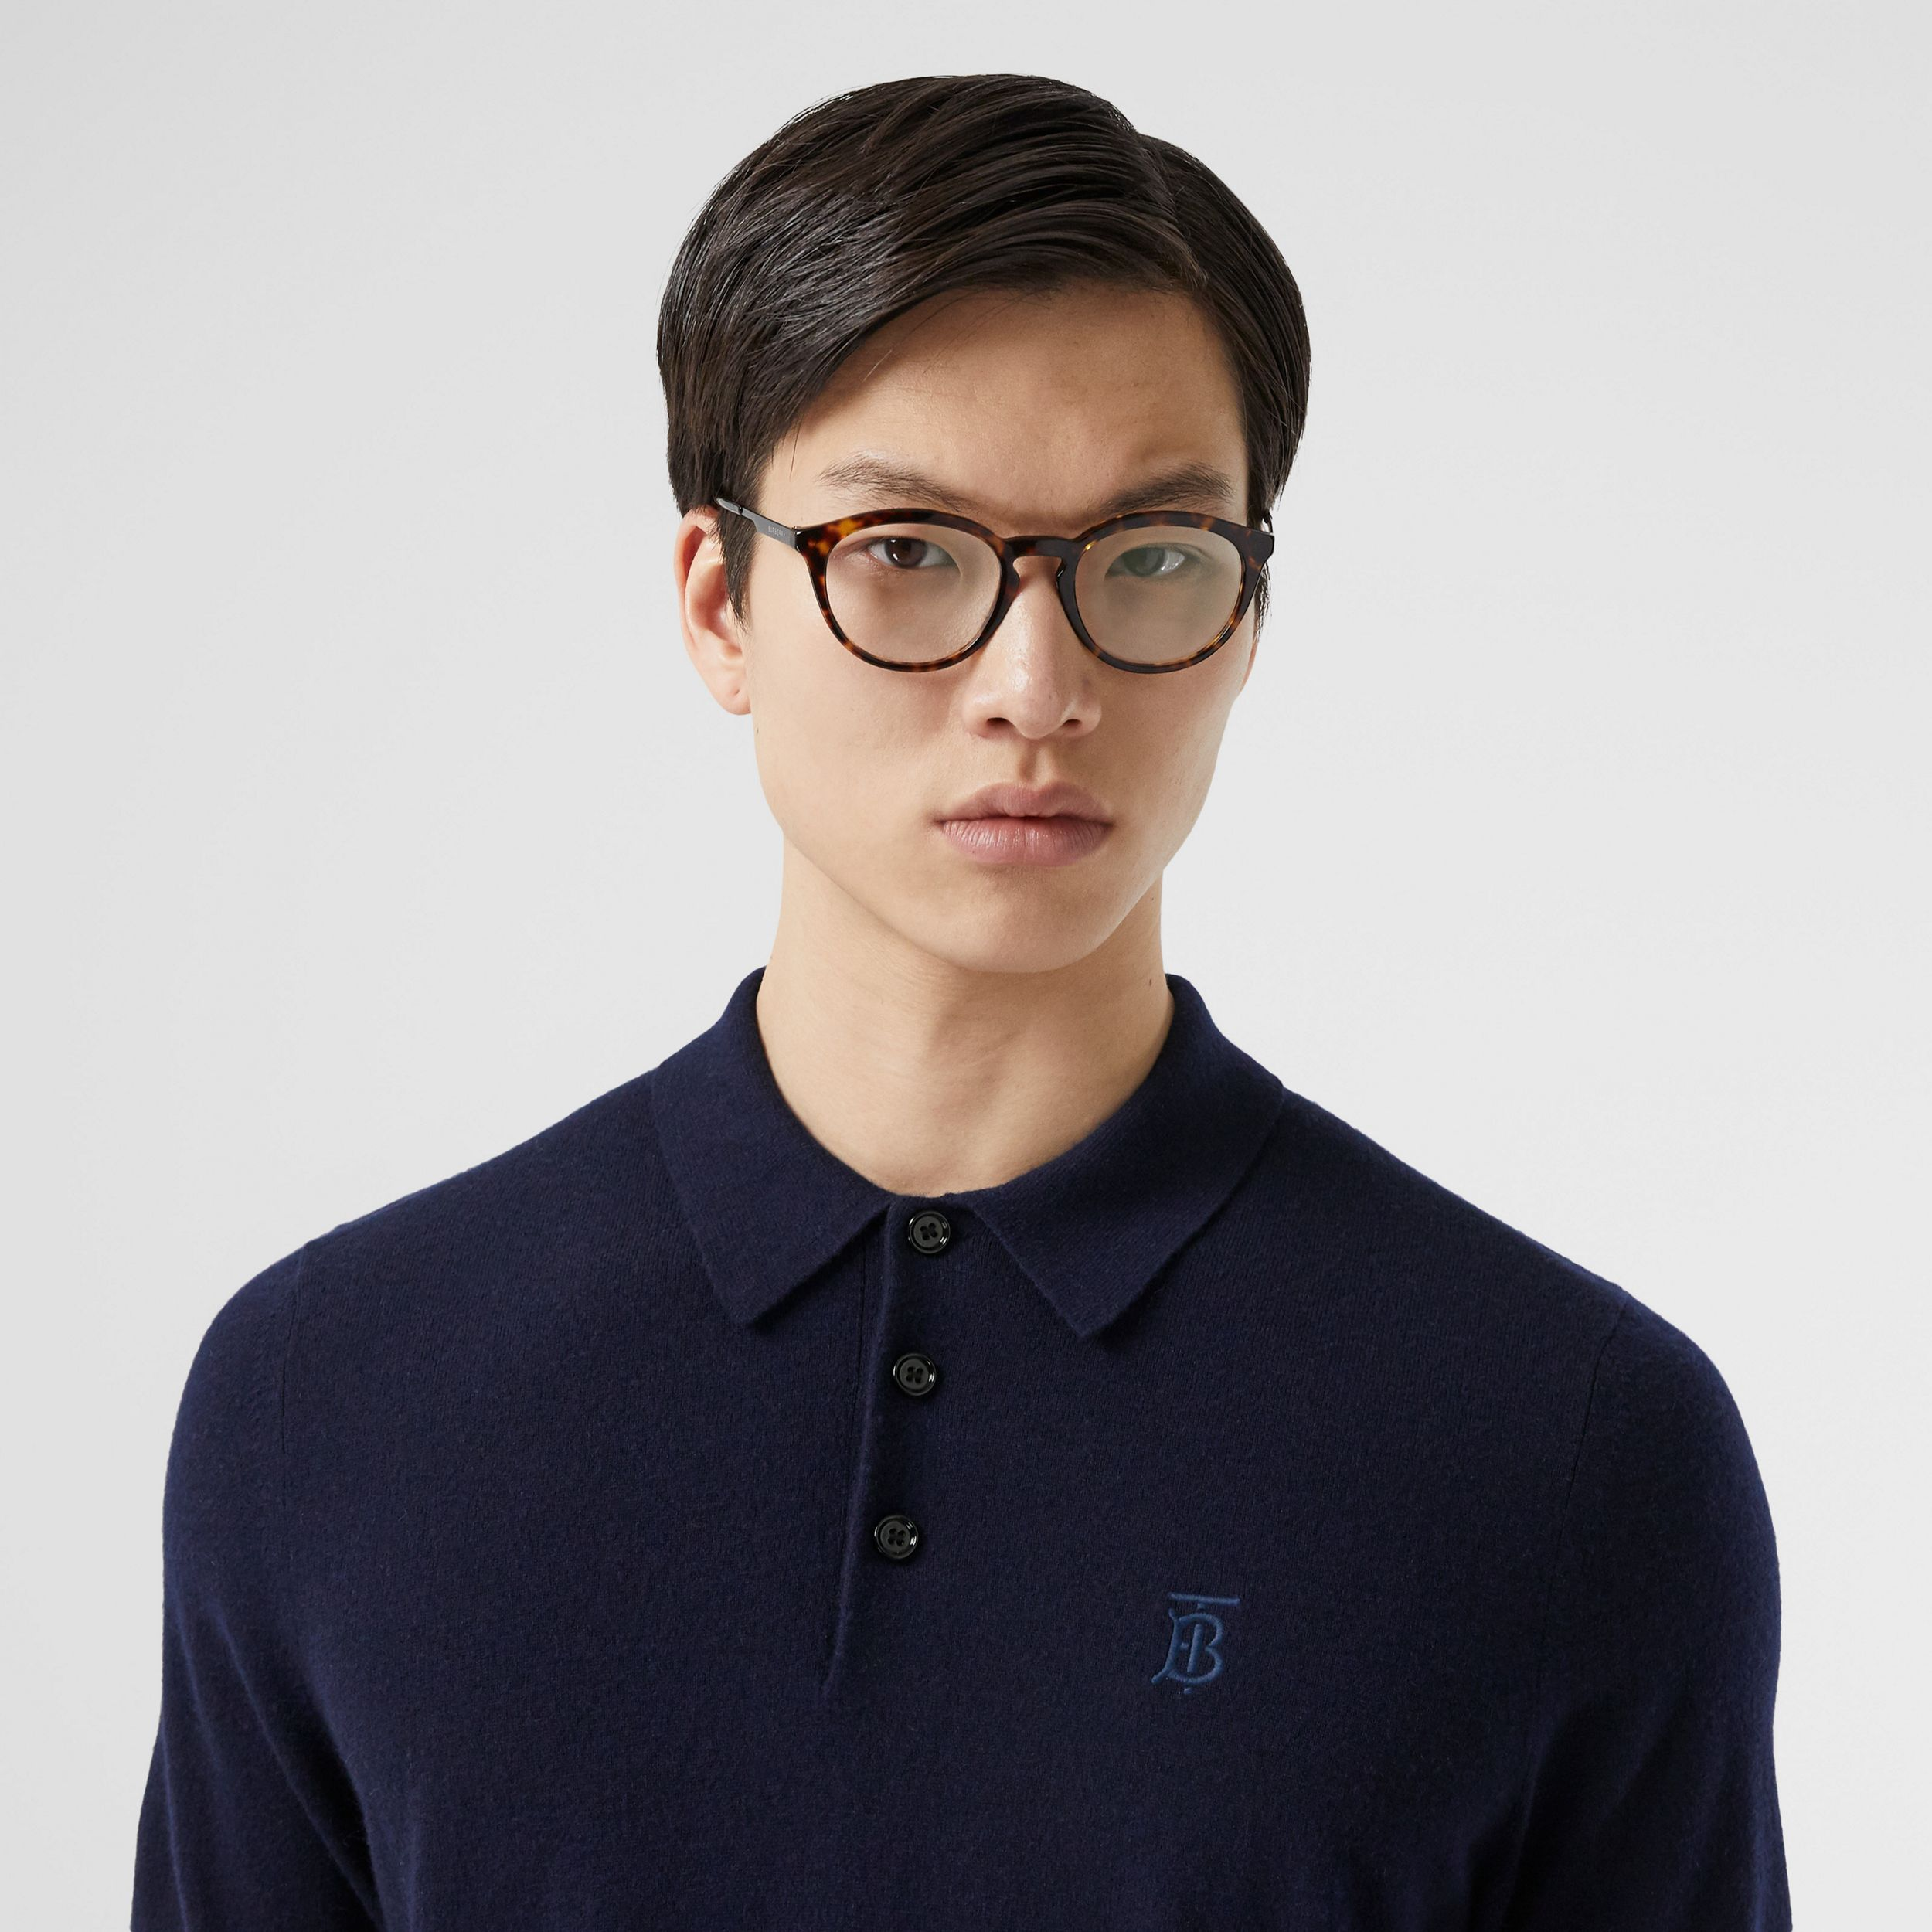 Monogram Motif Cashmere Polo Shirt in Navy - Men | Burberry Australia - 2